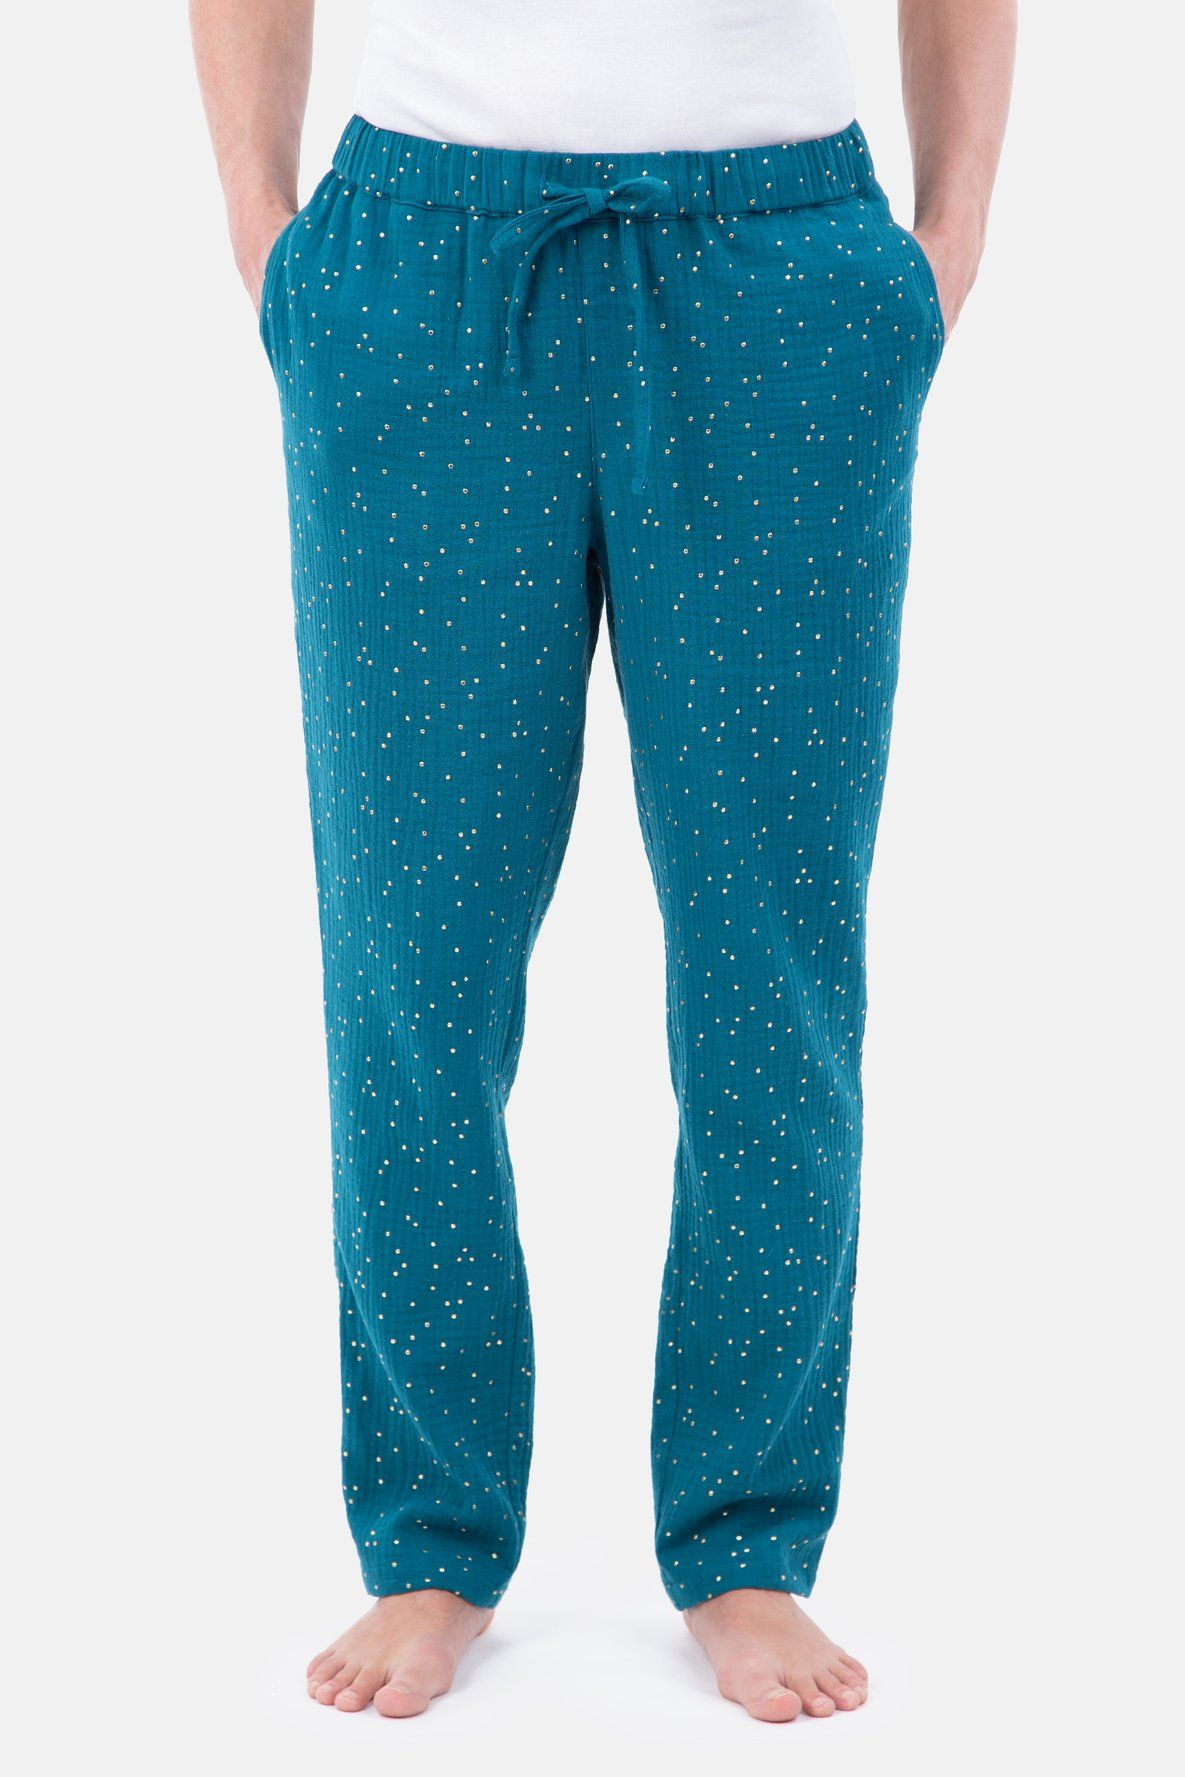 Photo of Sewing pattern for jogging pants made of woven fabric